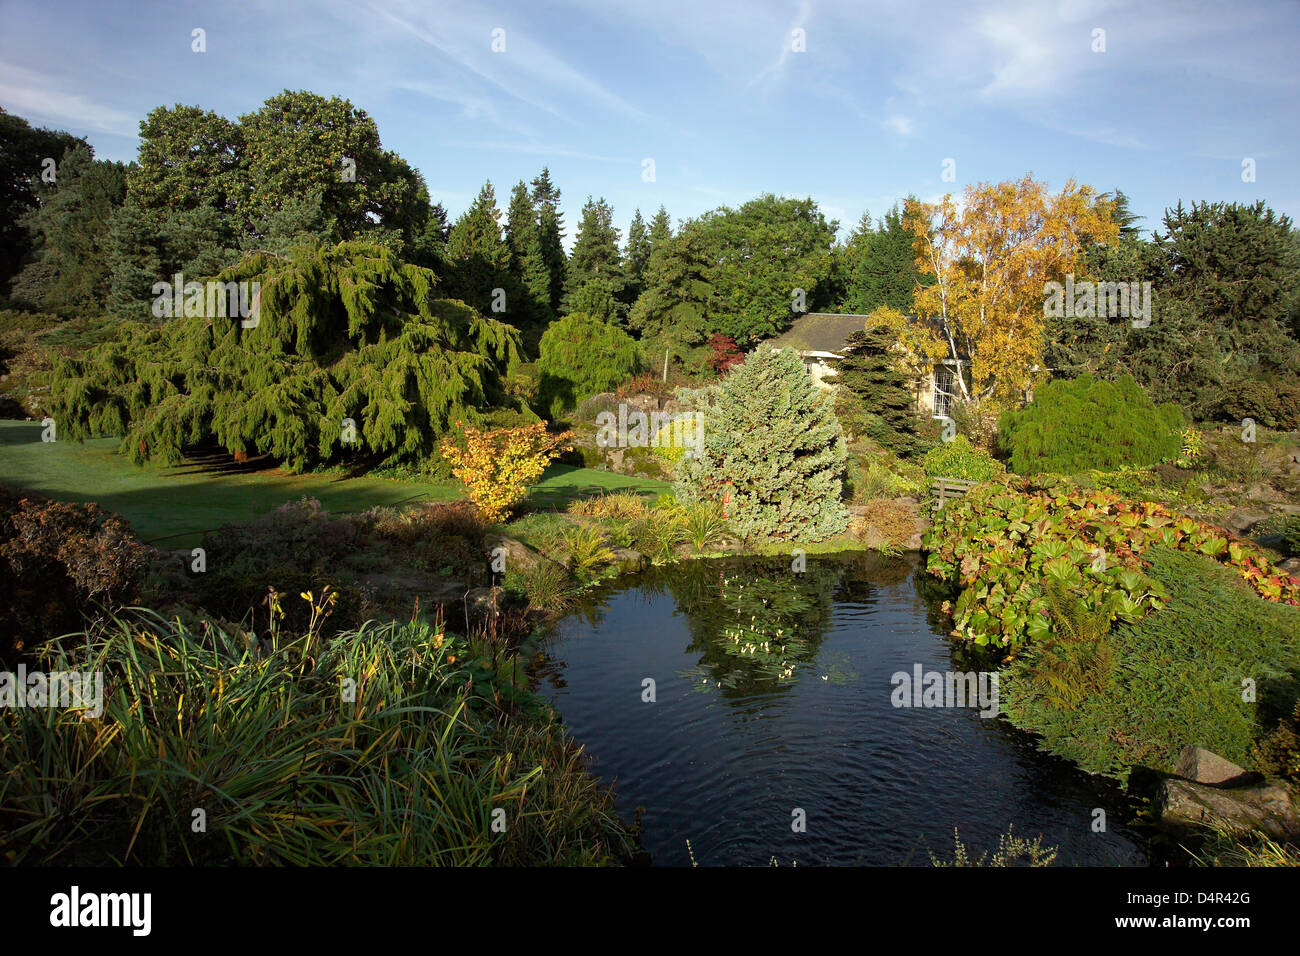 royal botanic garden - Stock Image